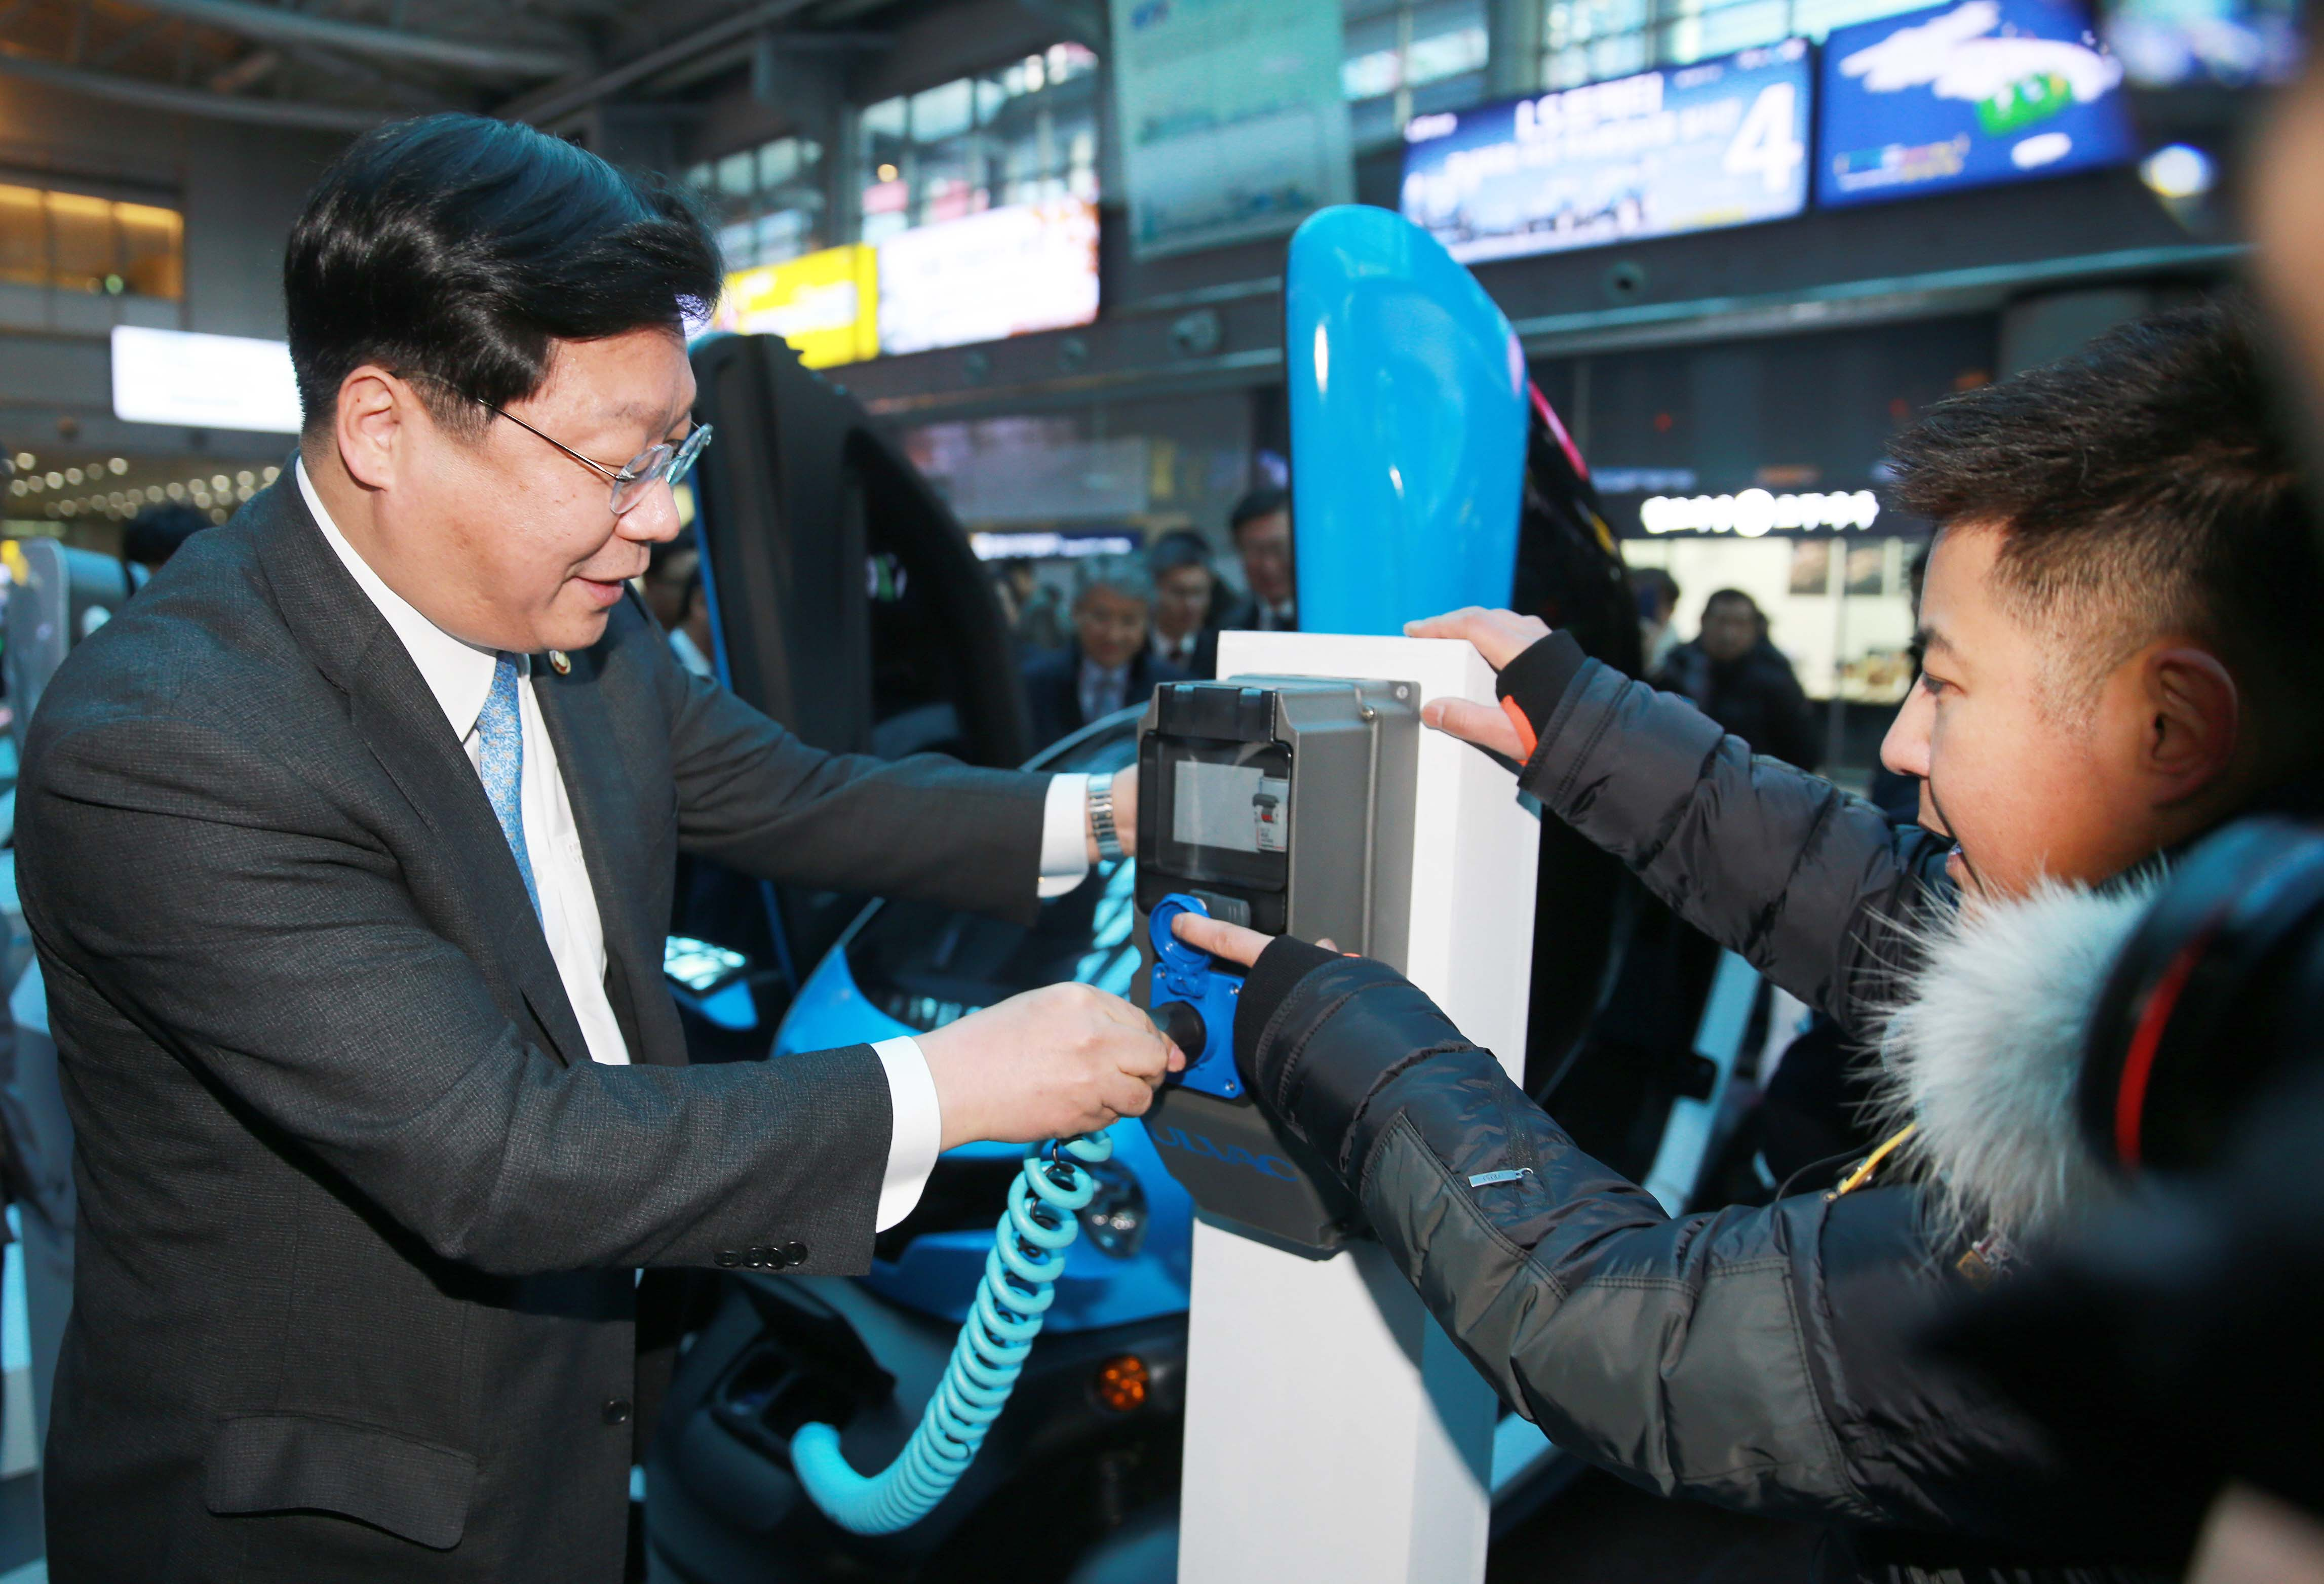 Minister Joo attends launch of electric vehicle charging station in heart of Seoul